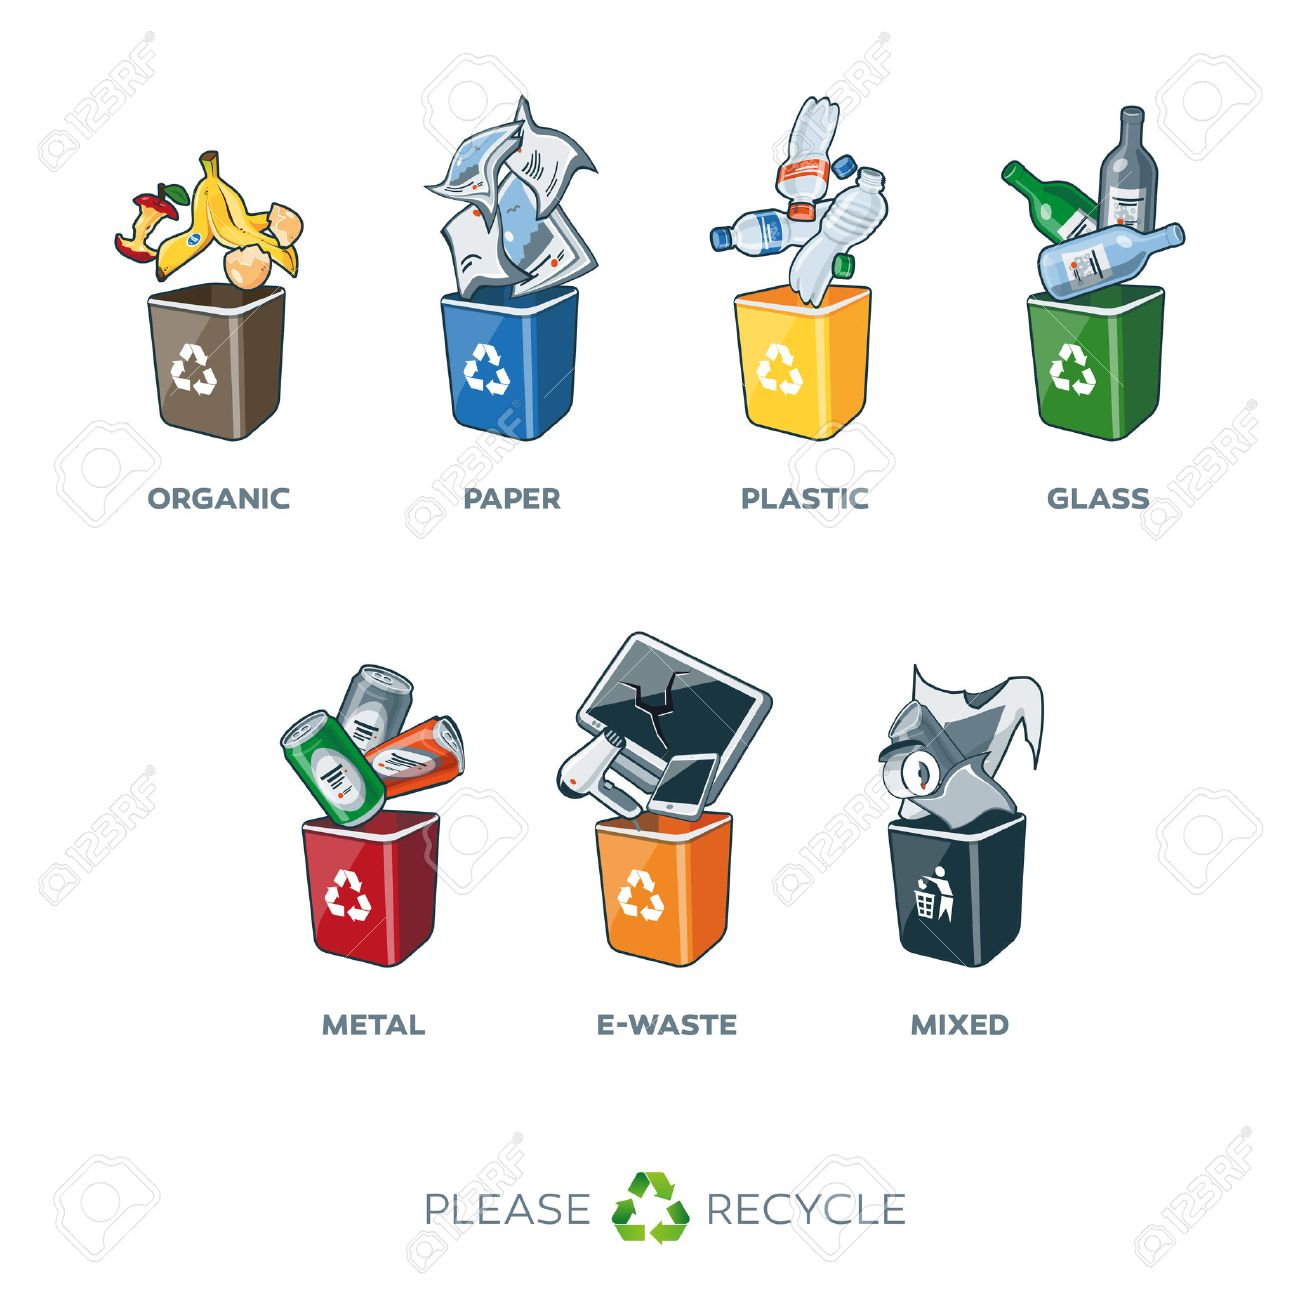 Illustration of separation recycling bins - 39500126